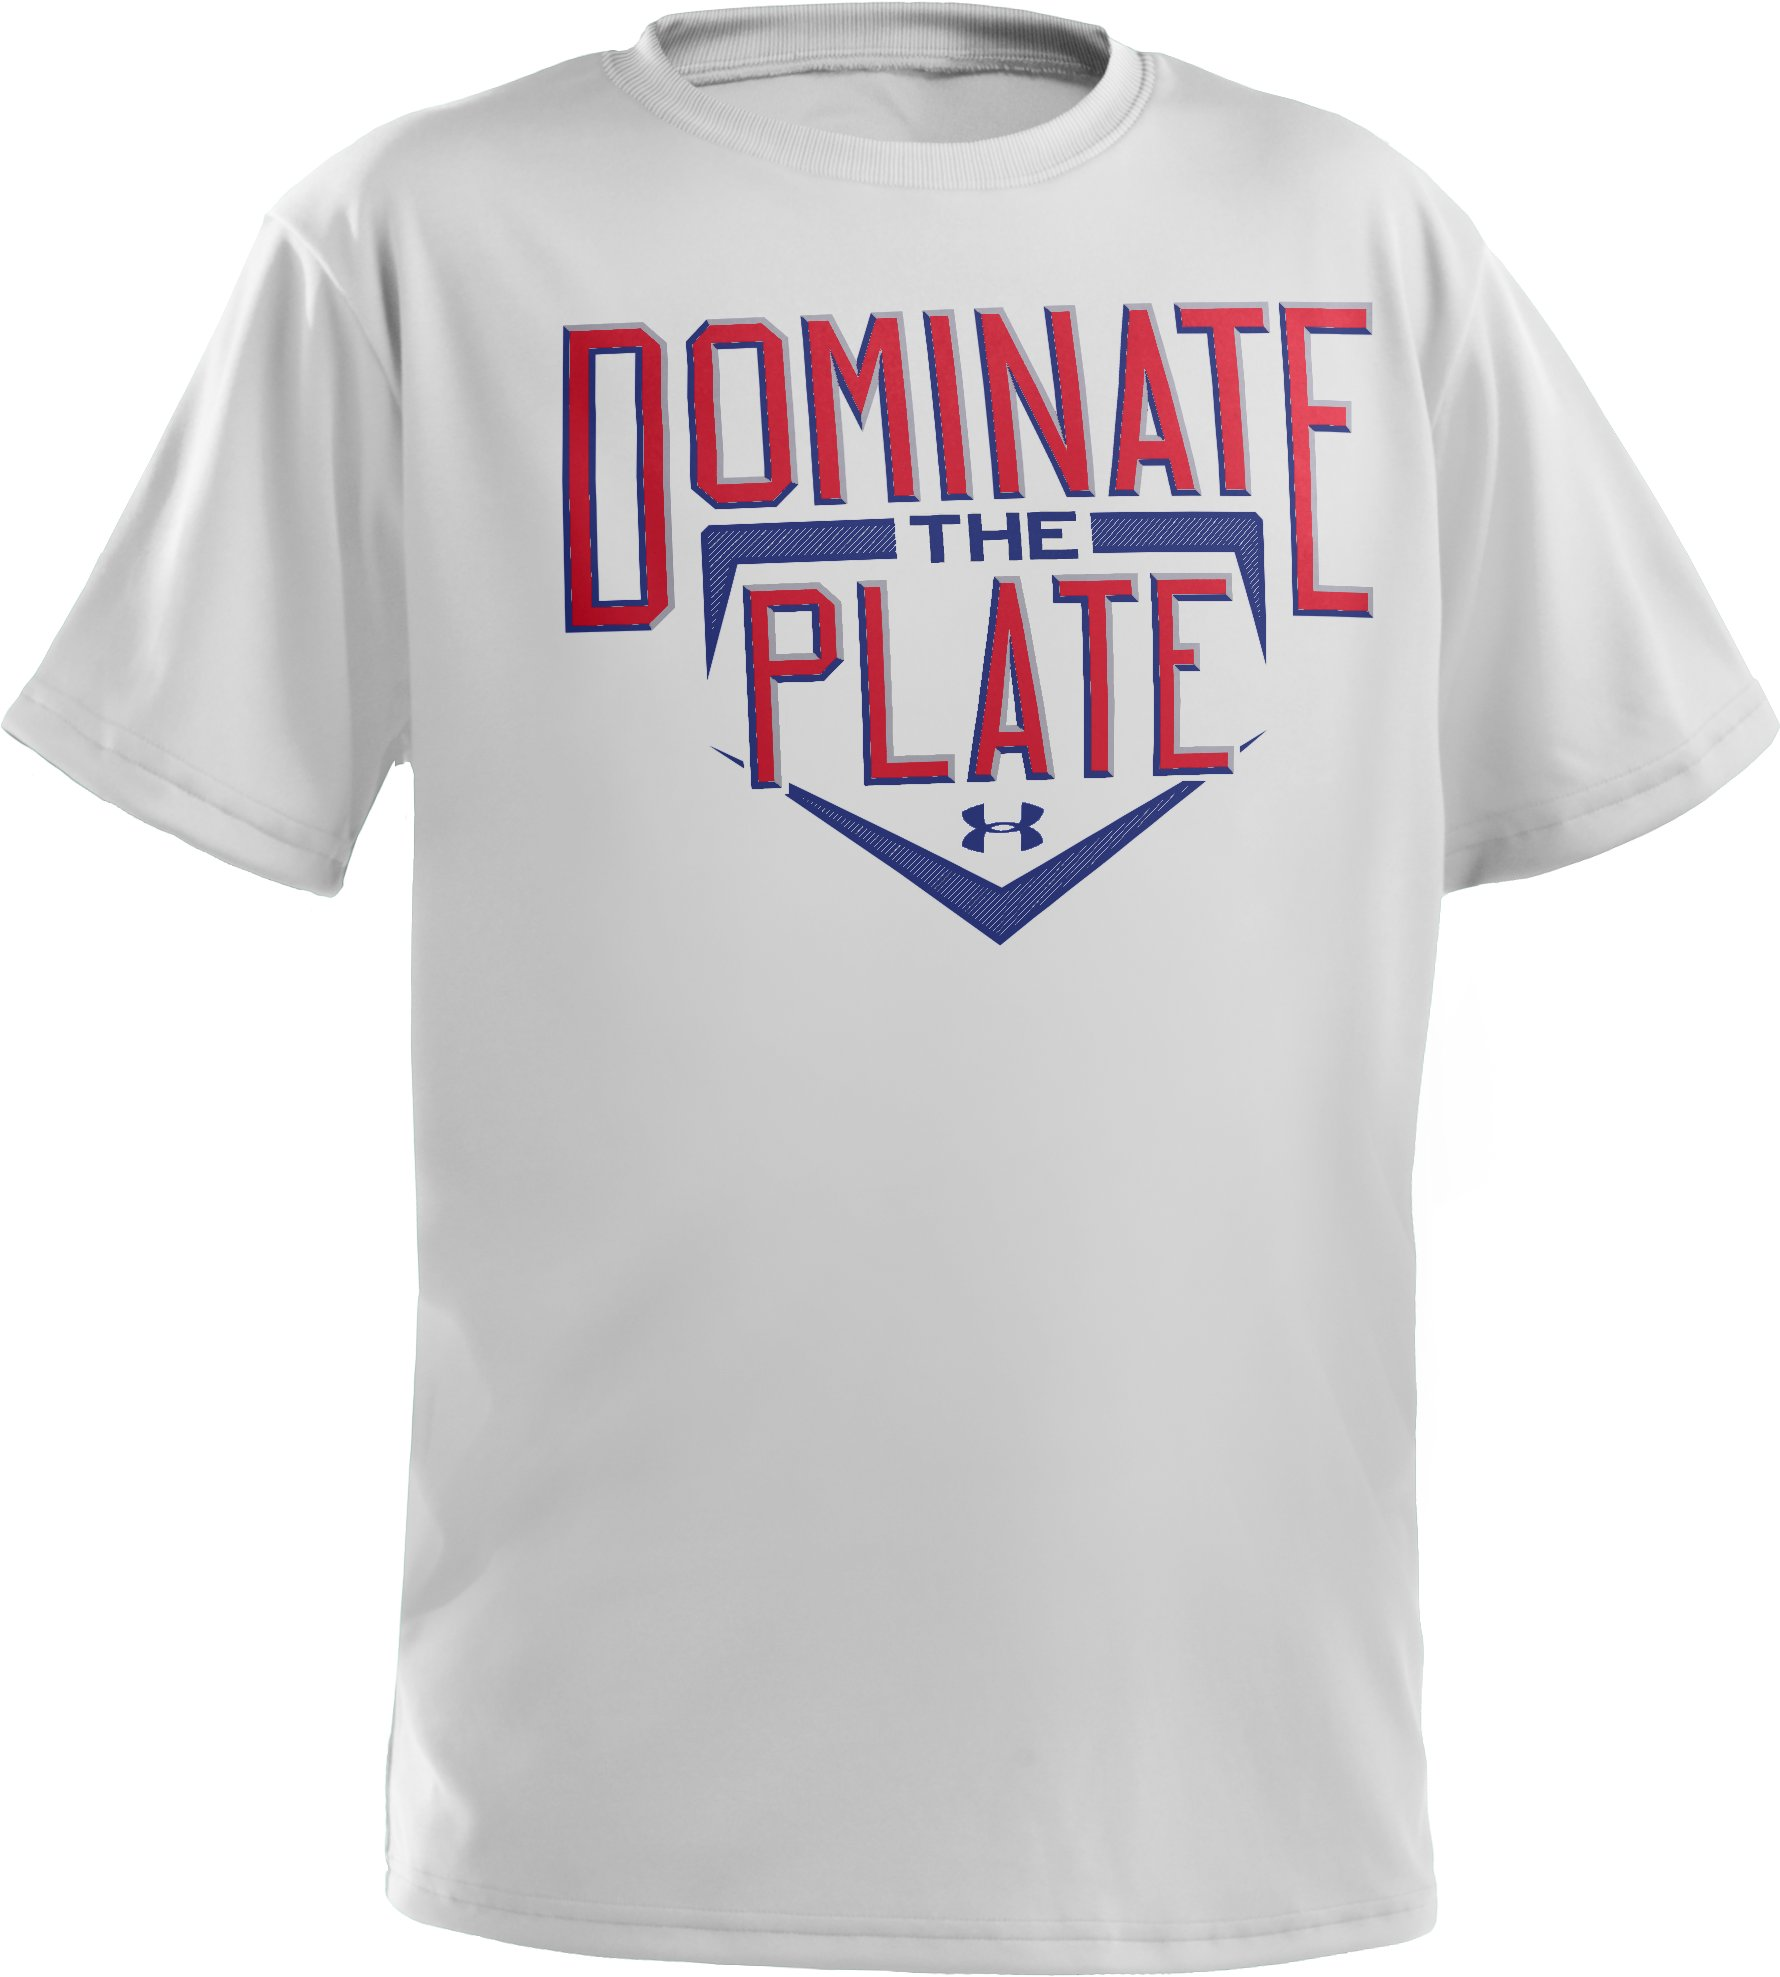 Boys' UA Dominate The Plate T-Shirt, White, undefined